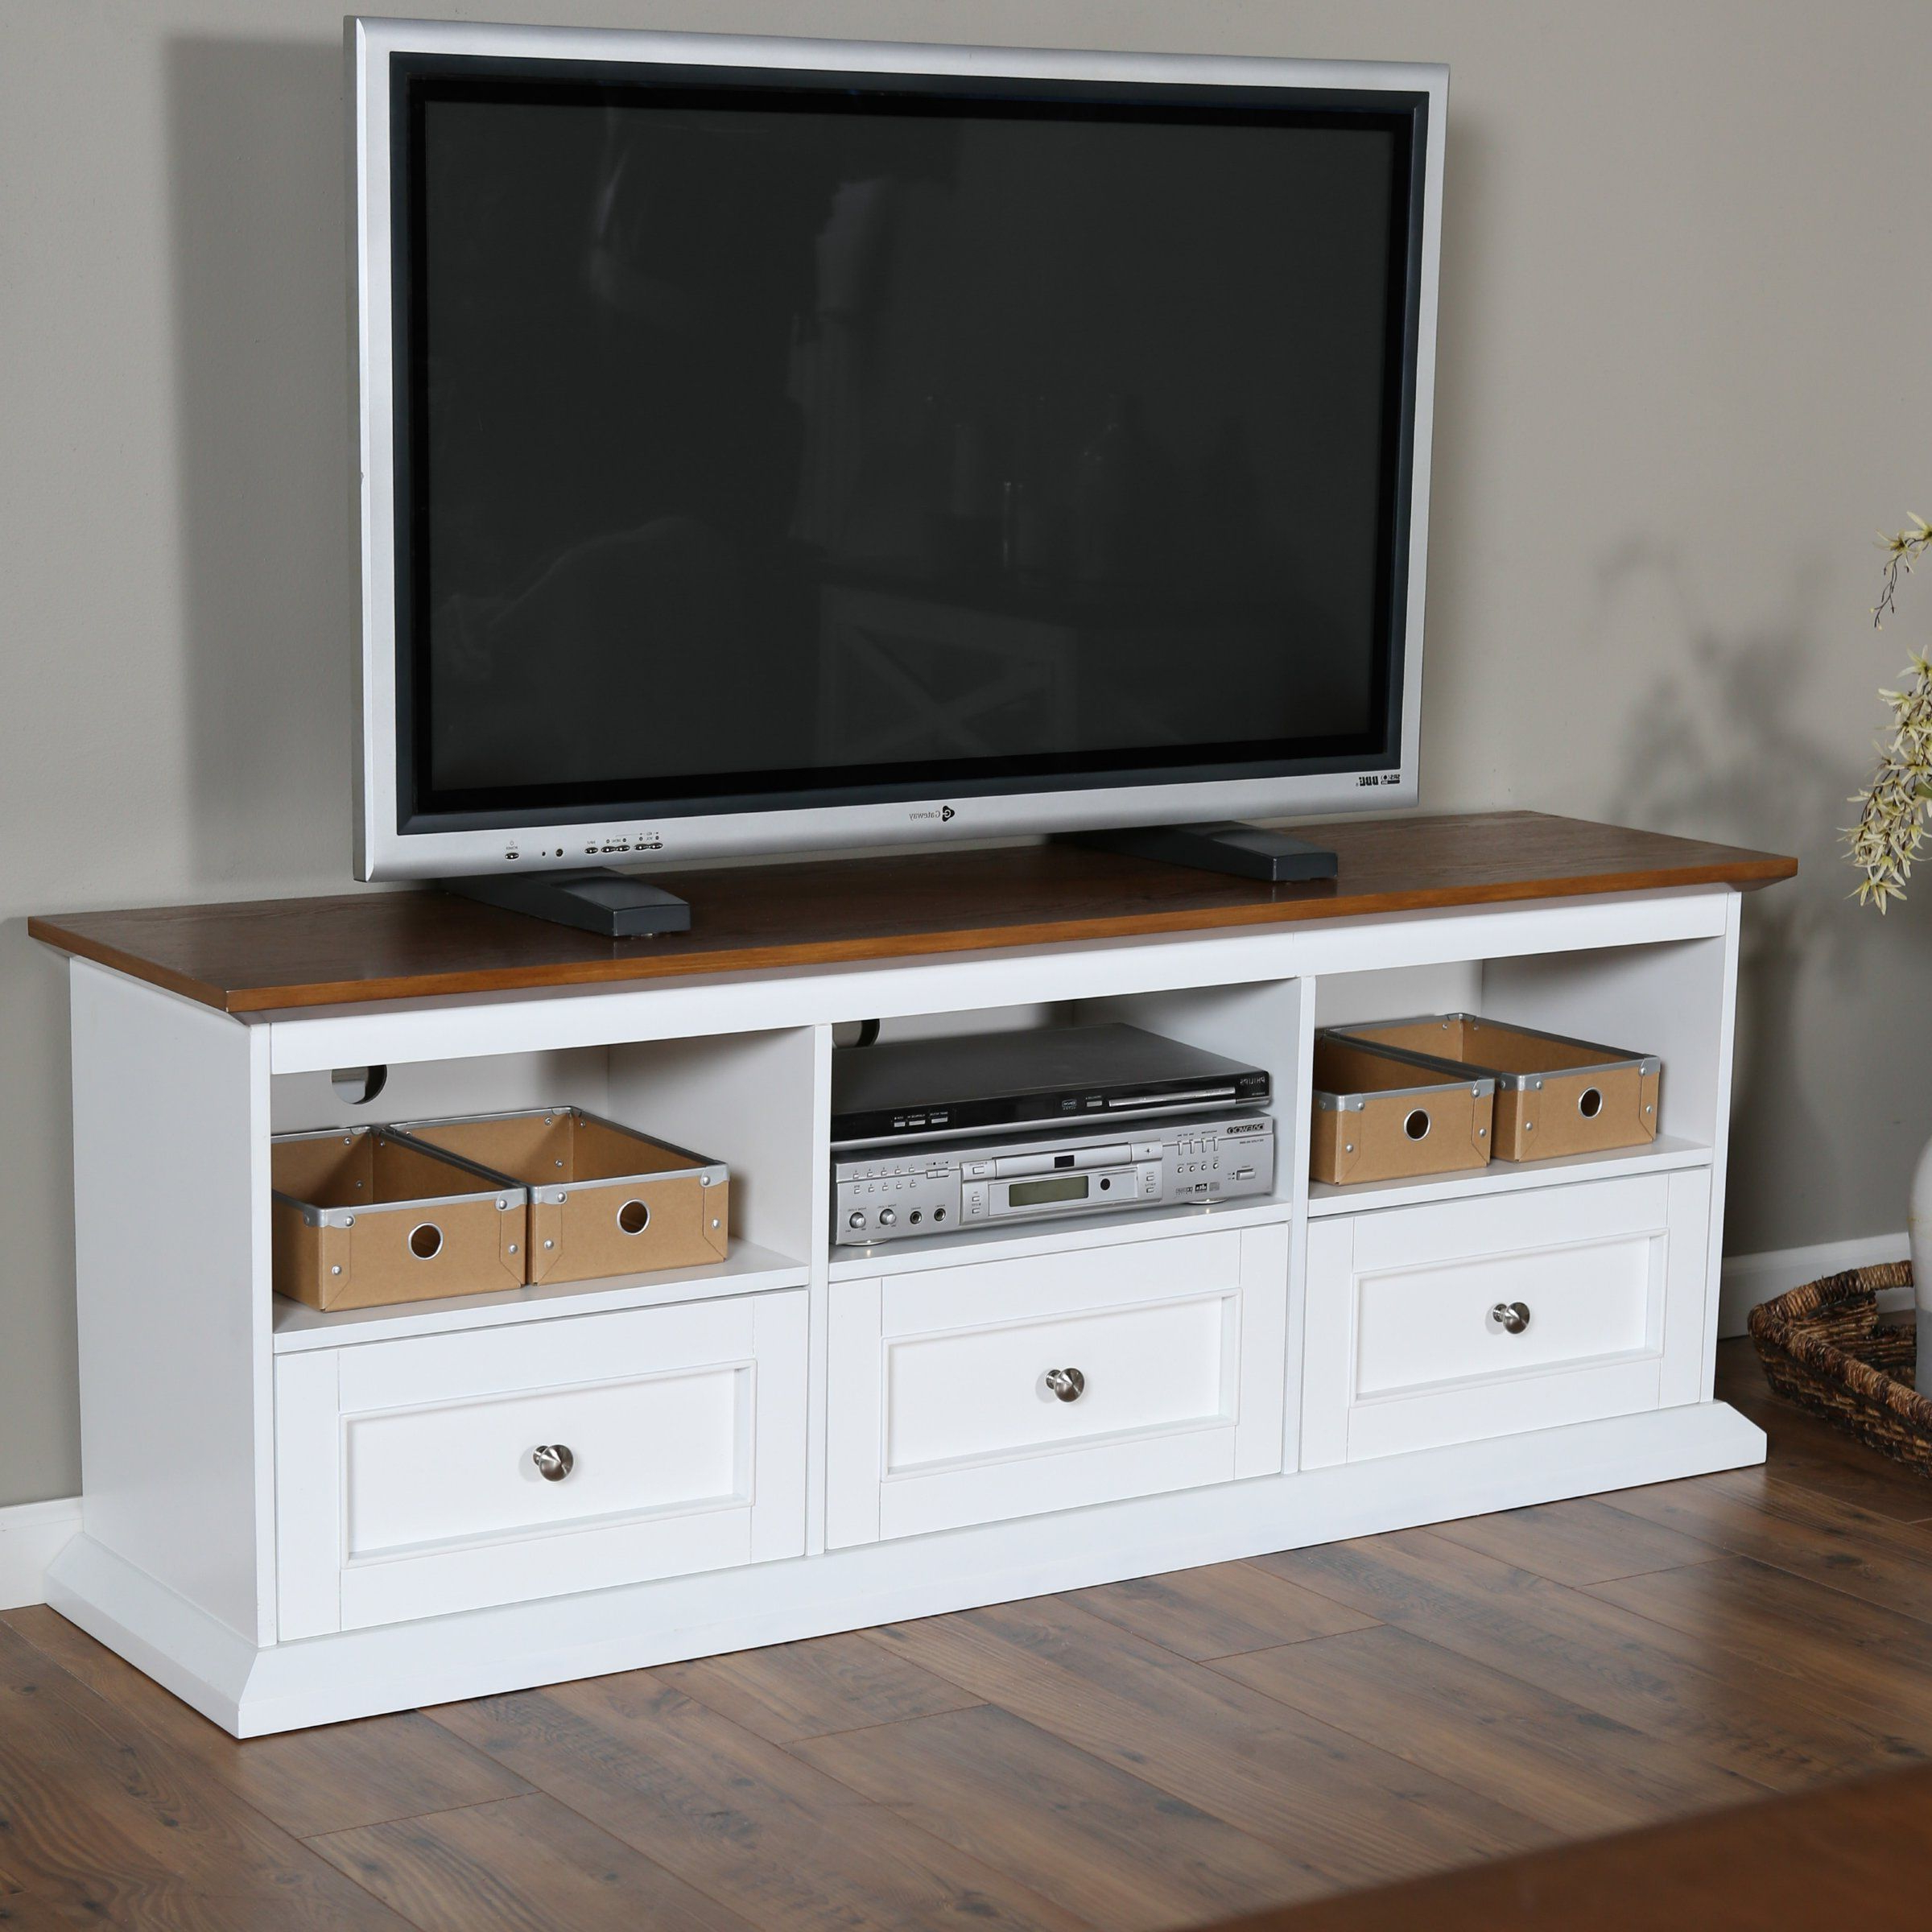 White And Wood Tv Stands Regarding Trendy Belham Living Hampton Tv Stand With Drawers – White/oak – Tv Stands (View 2 of 20)